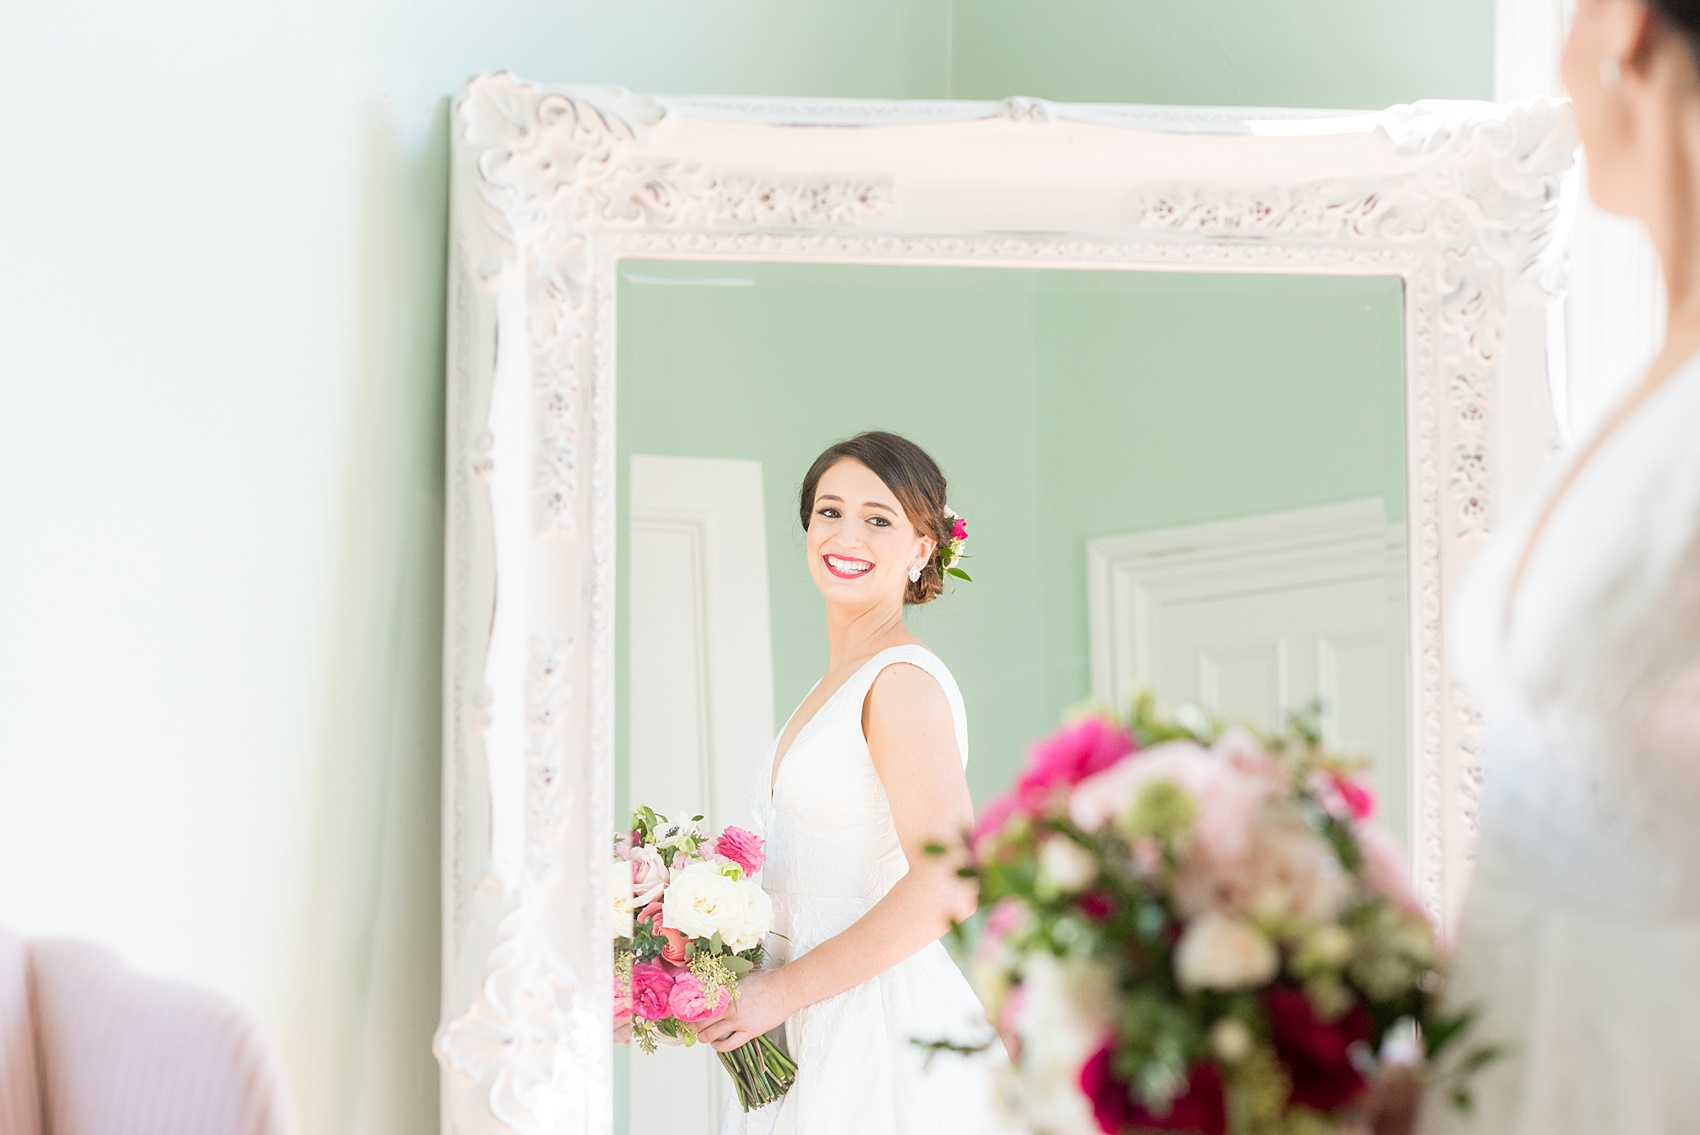 Mikkel Paige Photography pictures from a wedding at Merrimon-Wynne House in Raleigh, NC. Photo of the bride reflecting in a mirror in the bridal suite.